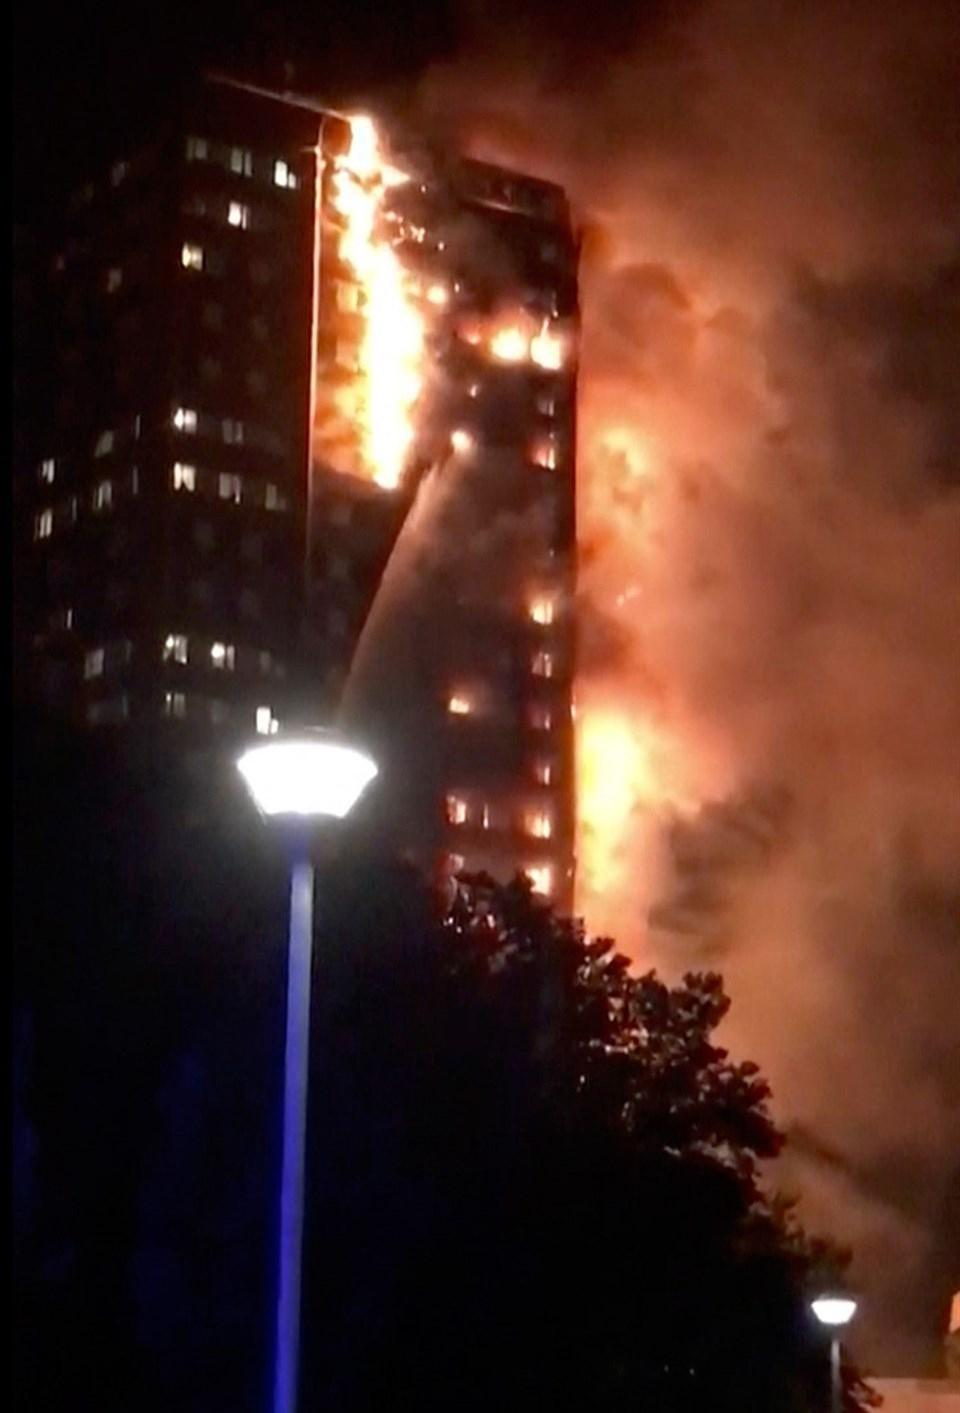 Is your home one of estimated 30,000 which may have to be torn down after Grenfell Tower horror?